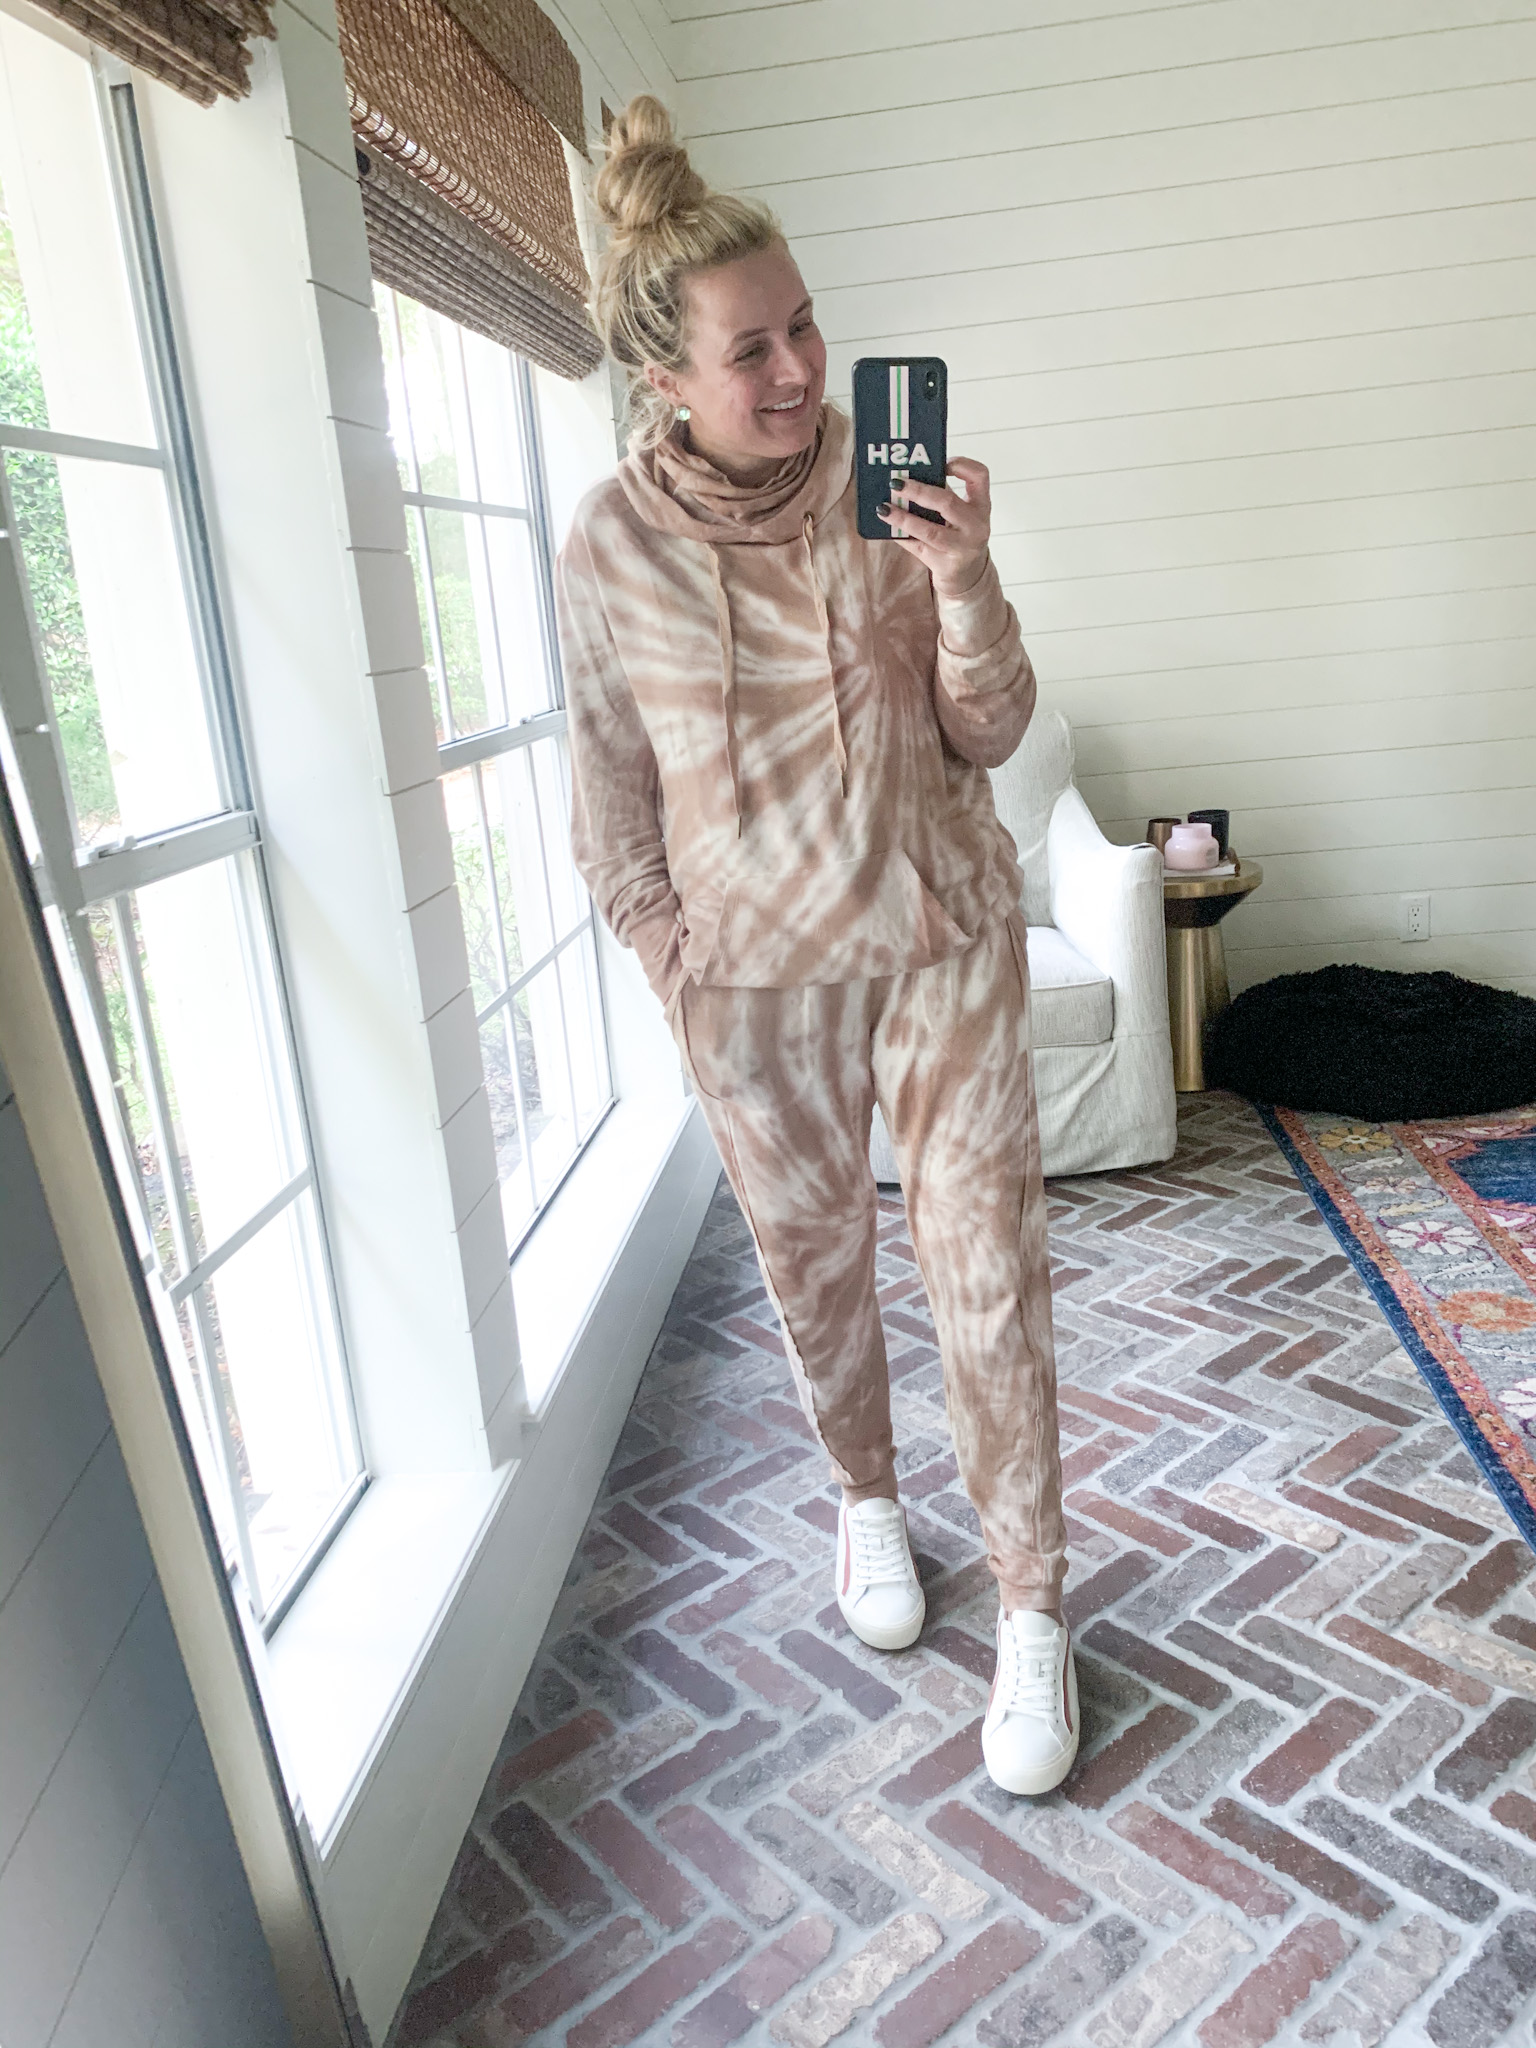 Walmart Womens Clothes by popular Houston fashion blog, Fancy Ashley: image of a woman wearing a Walmart Scoop Women's tie dye French Terry Hoodie and Scoop Women's tie dye Joggers with Front Seaming.